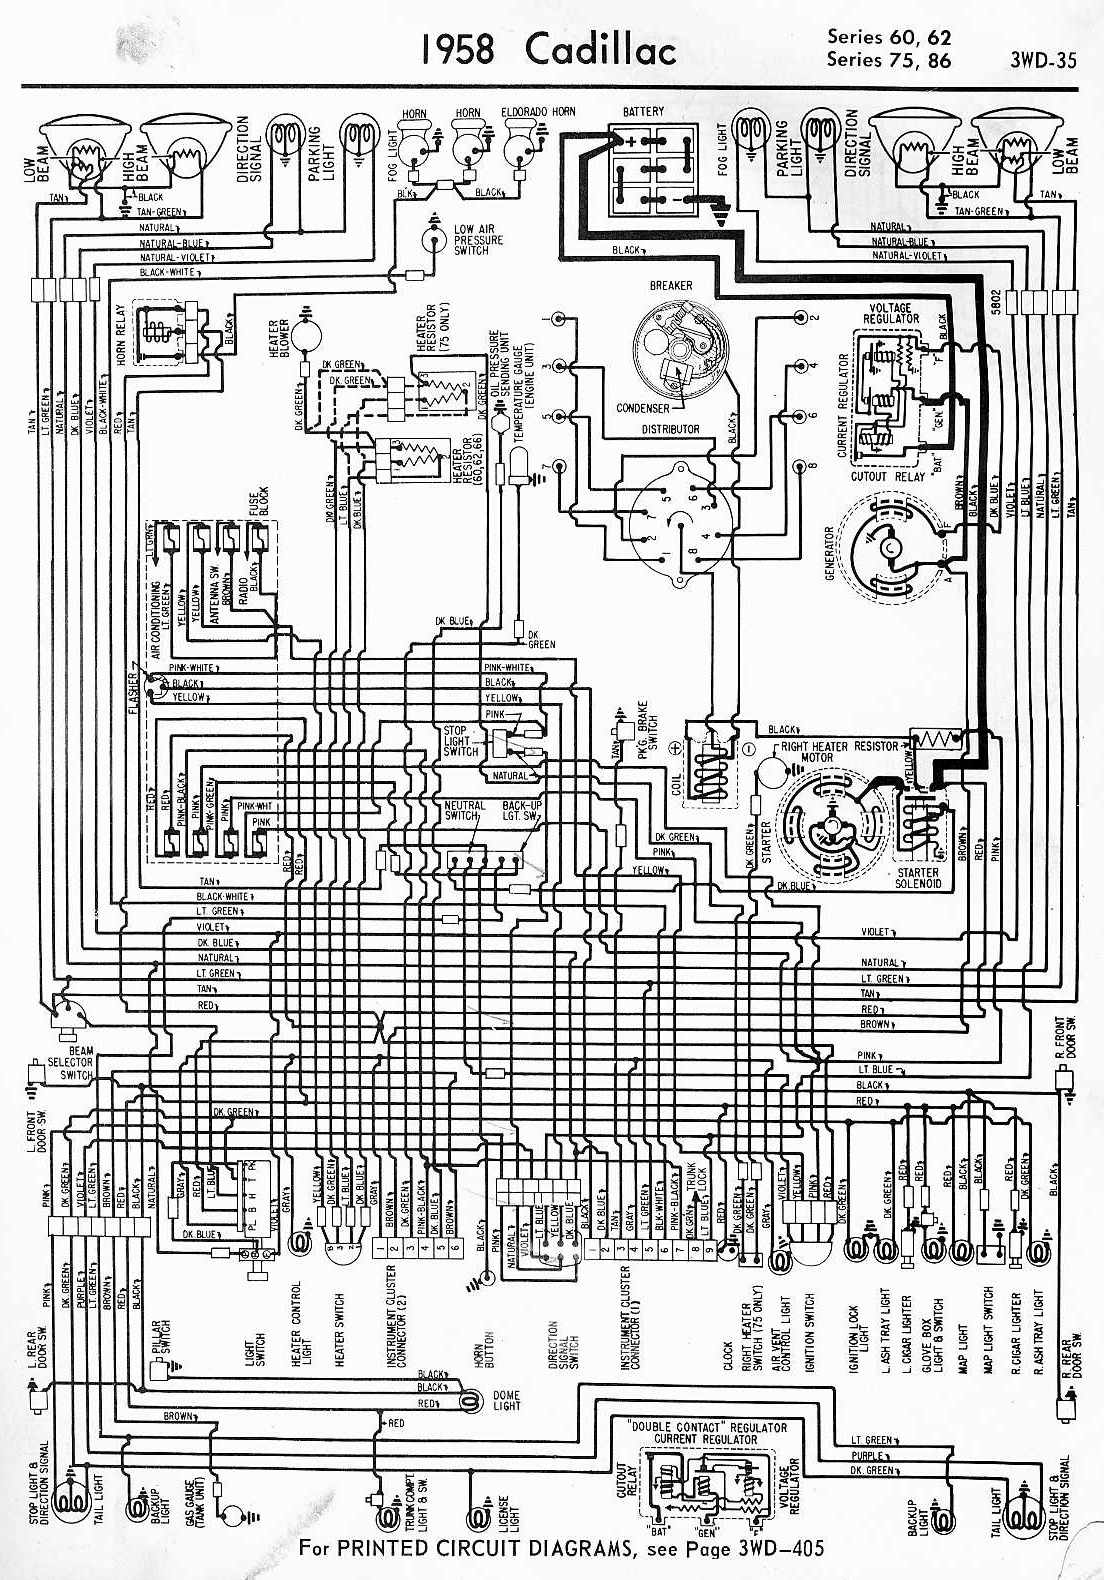 1986 Camaro Fuse Box Diagram Schematics 86 Wire Diagrams 79 Corvette